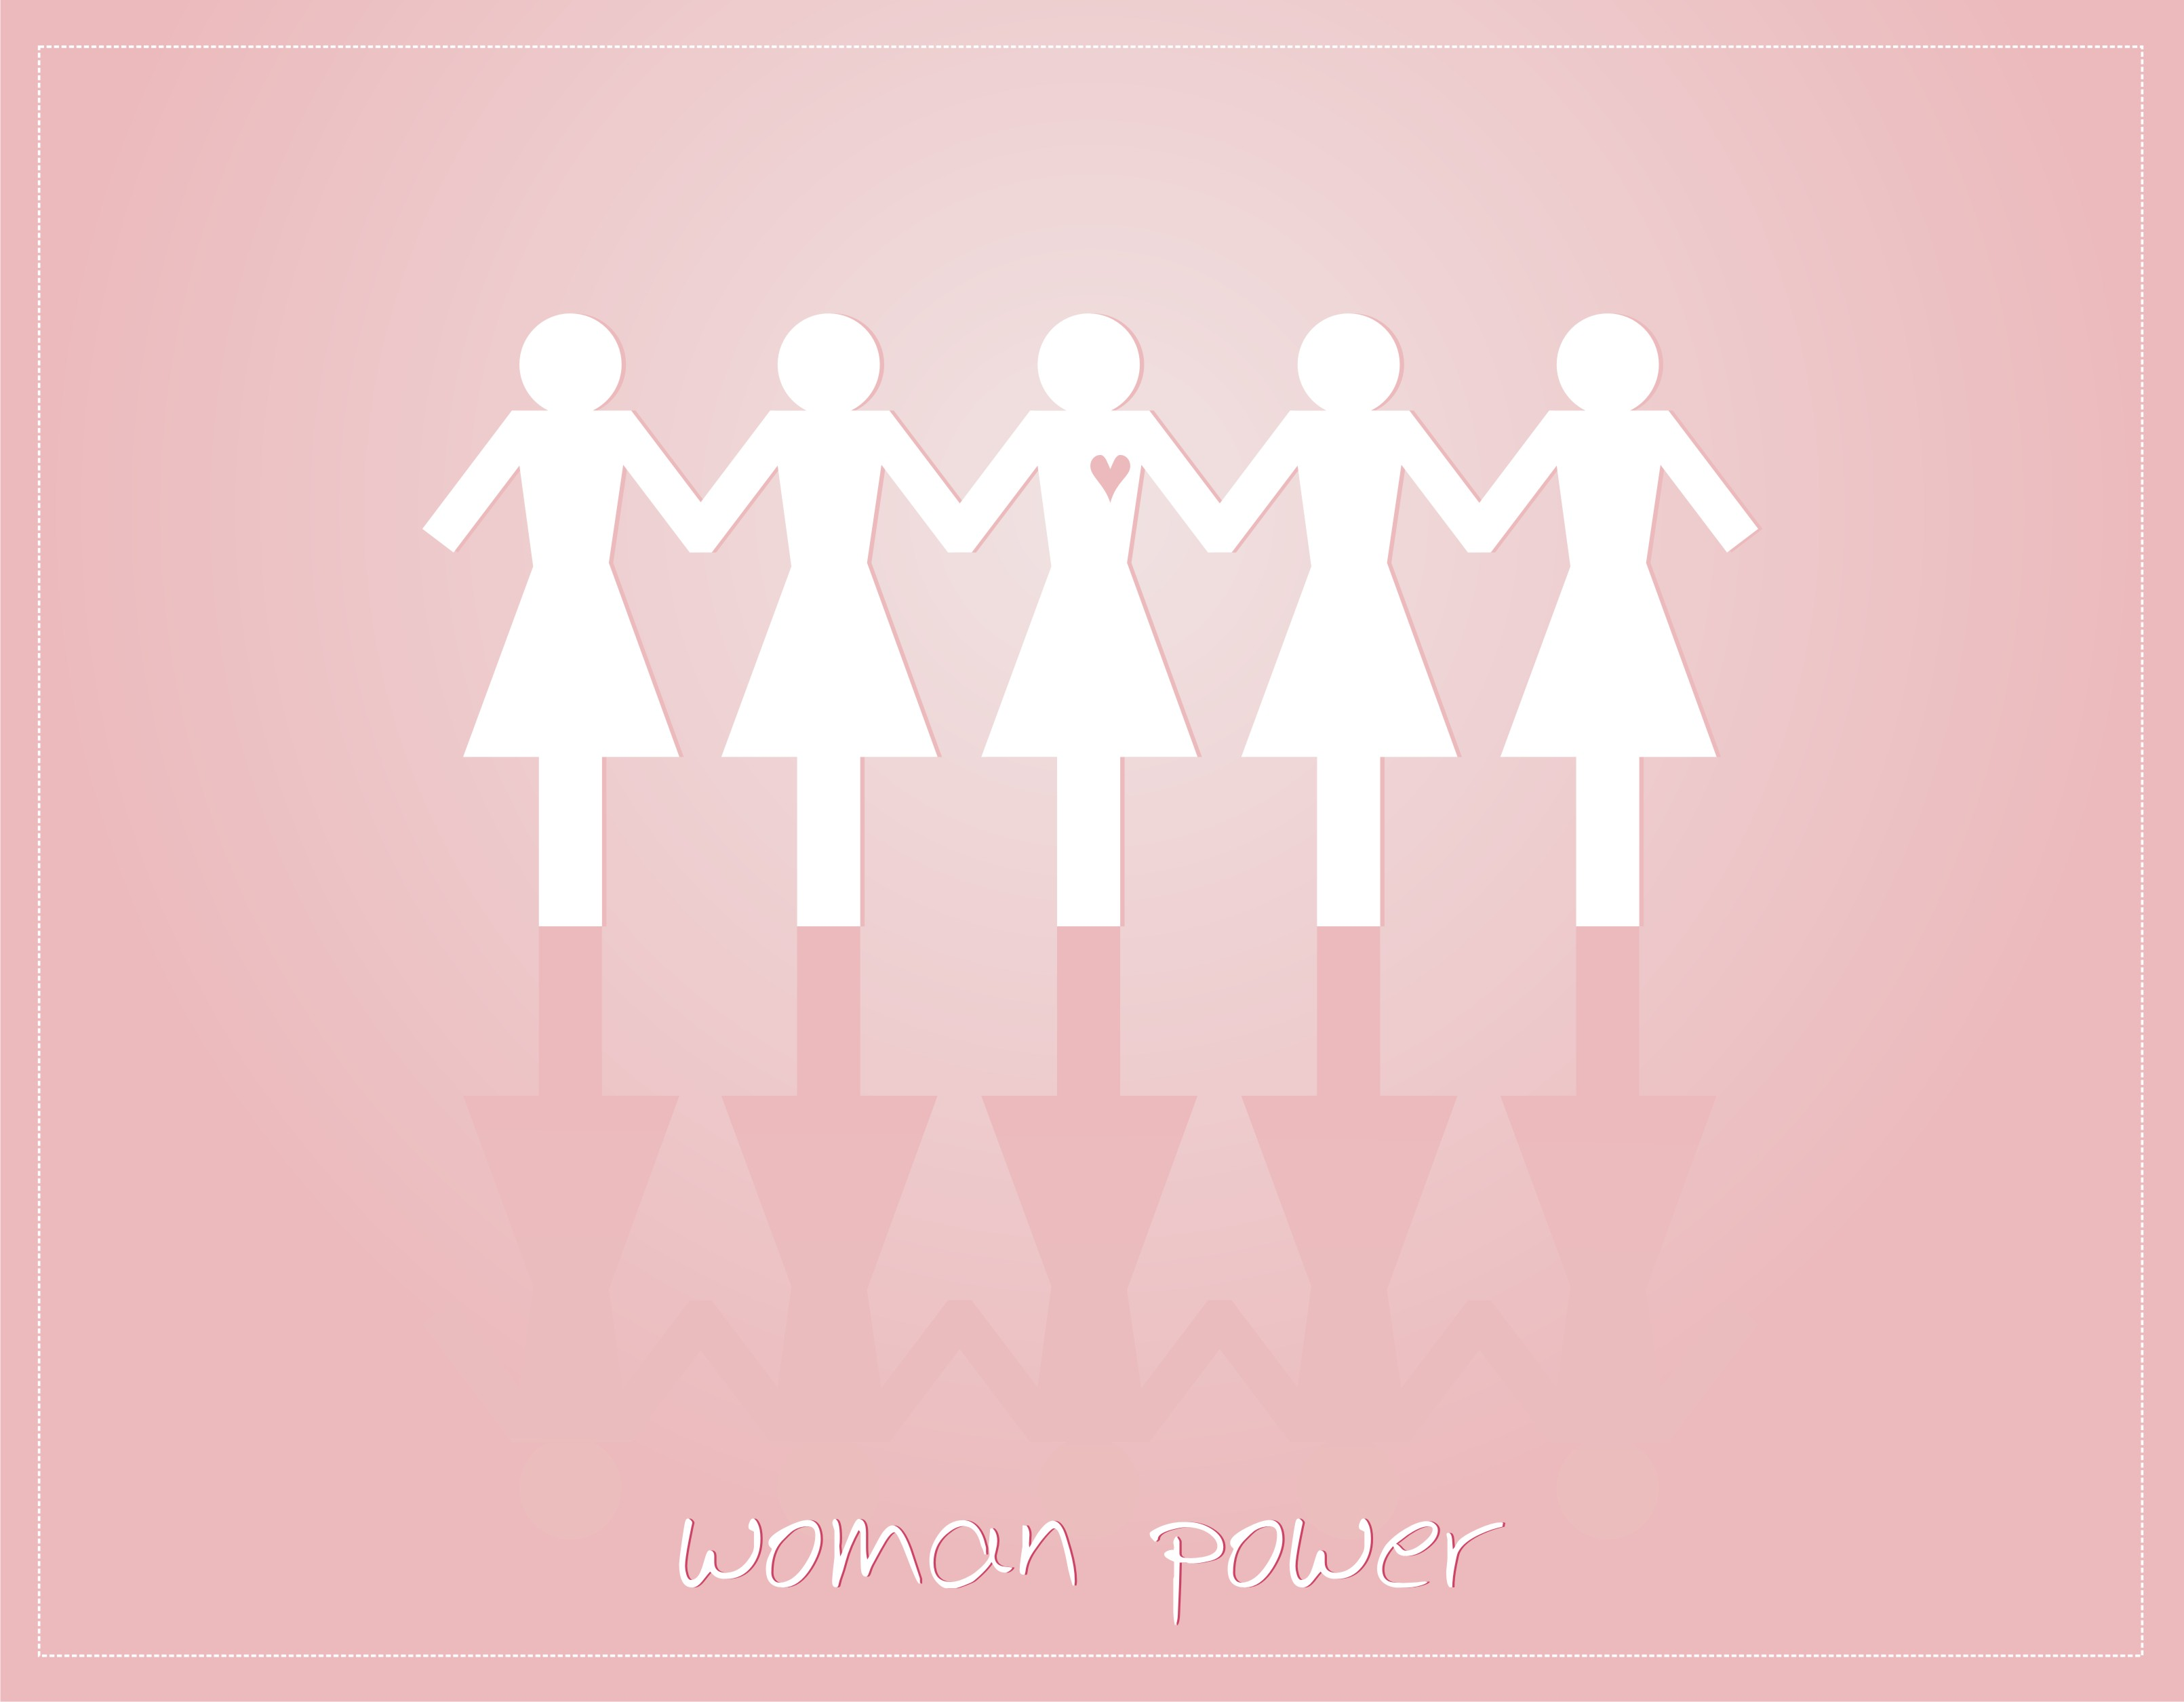 women-power